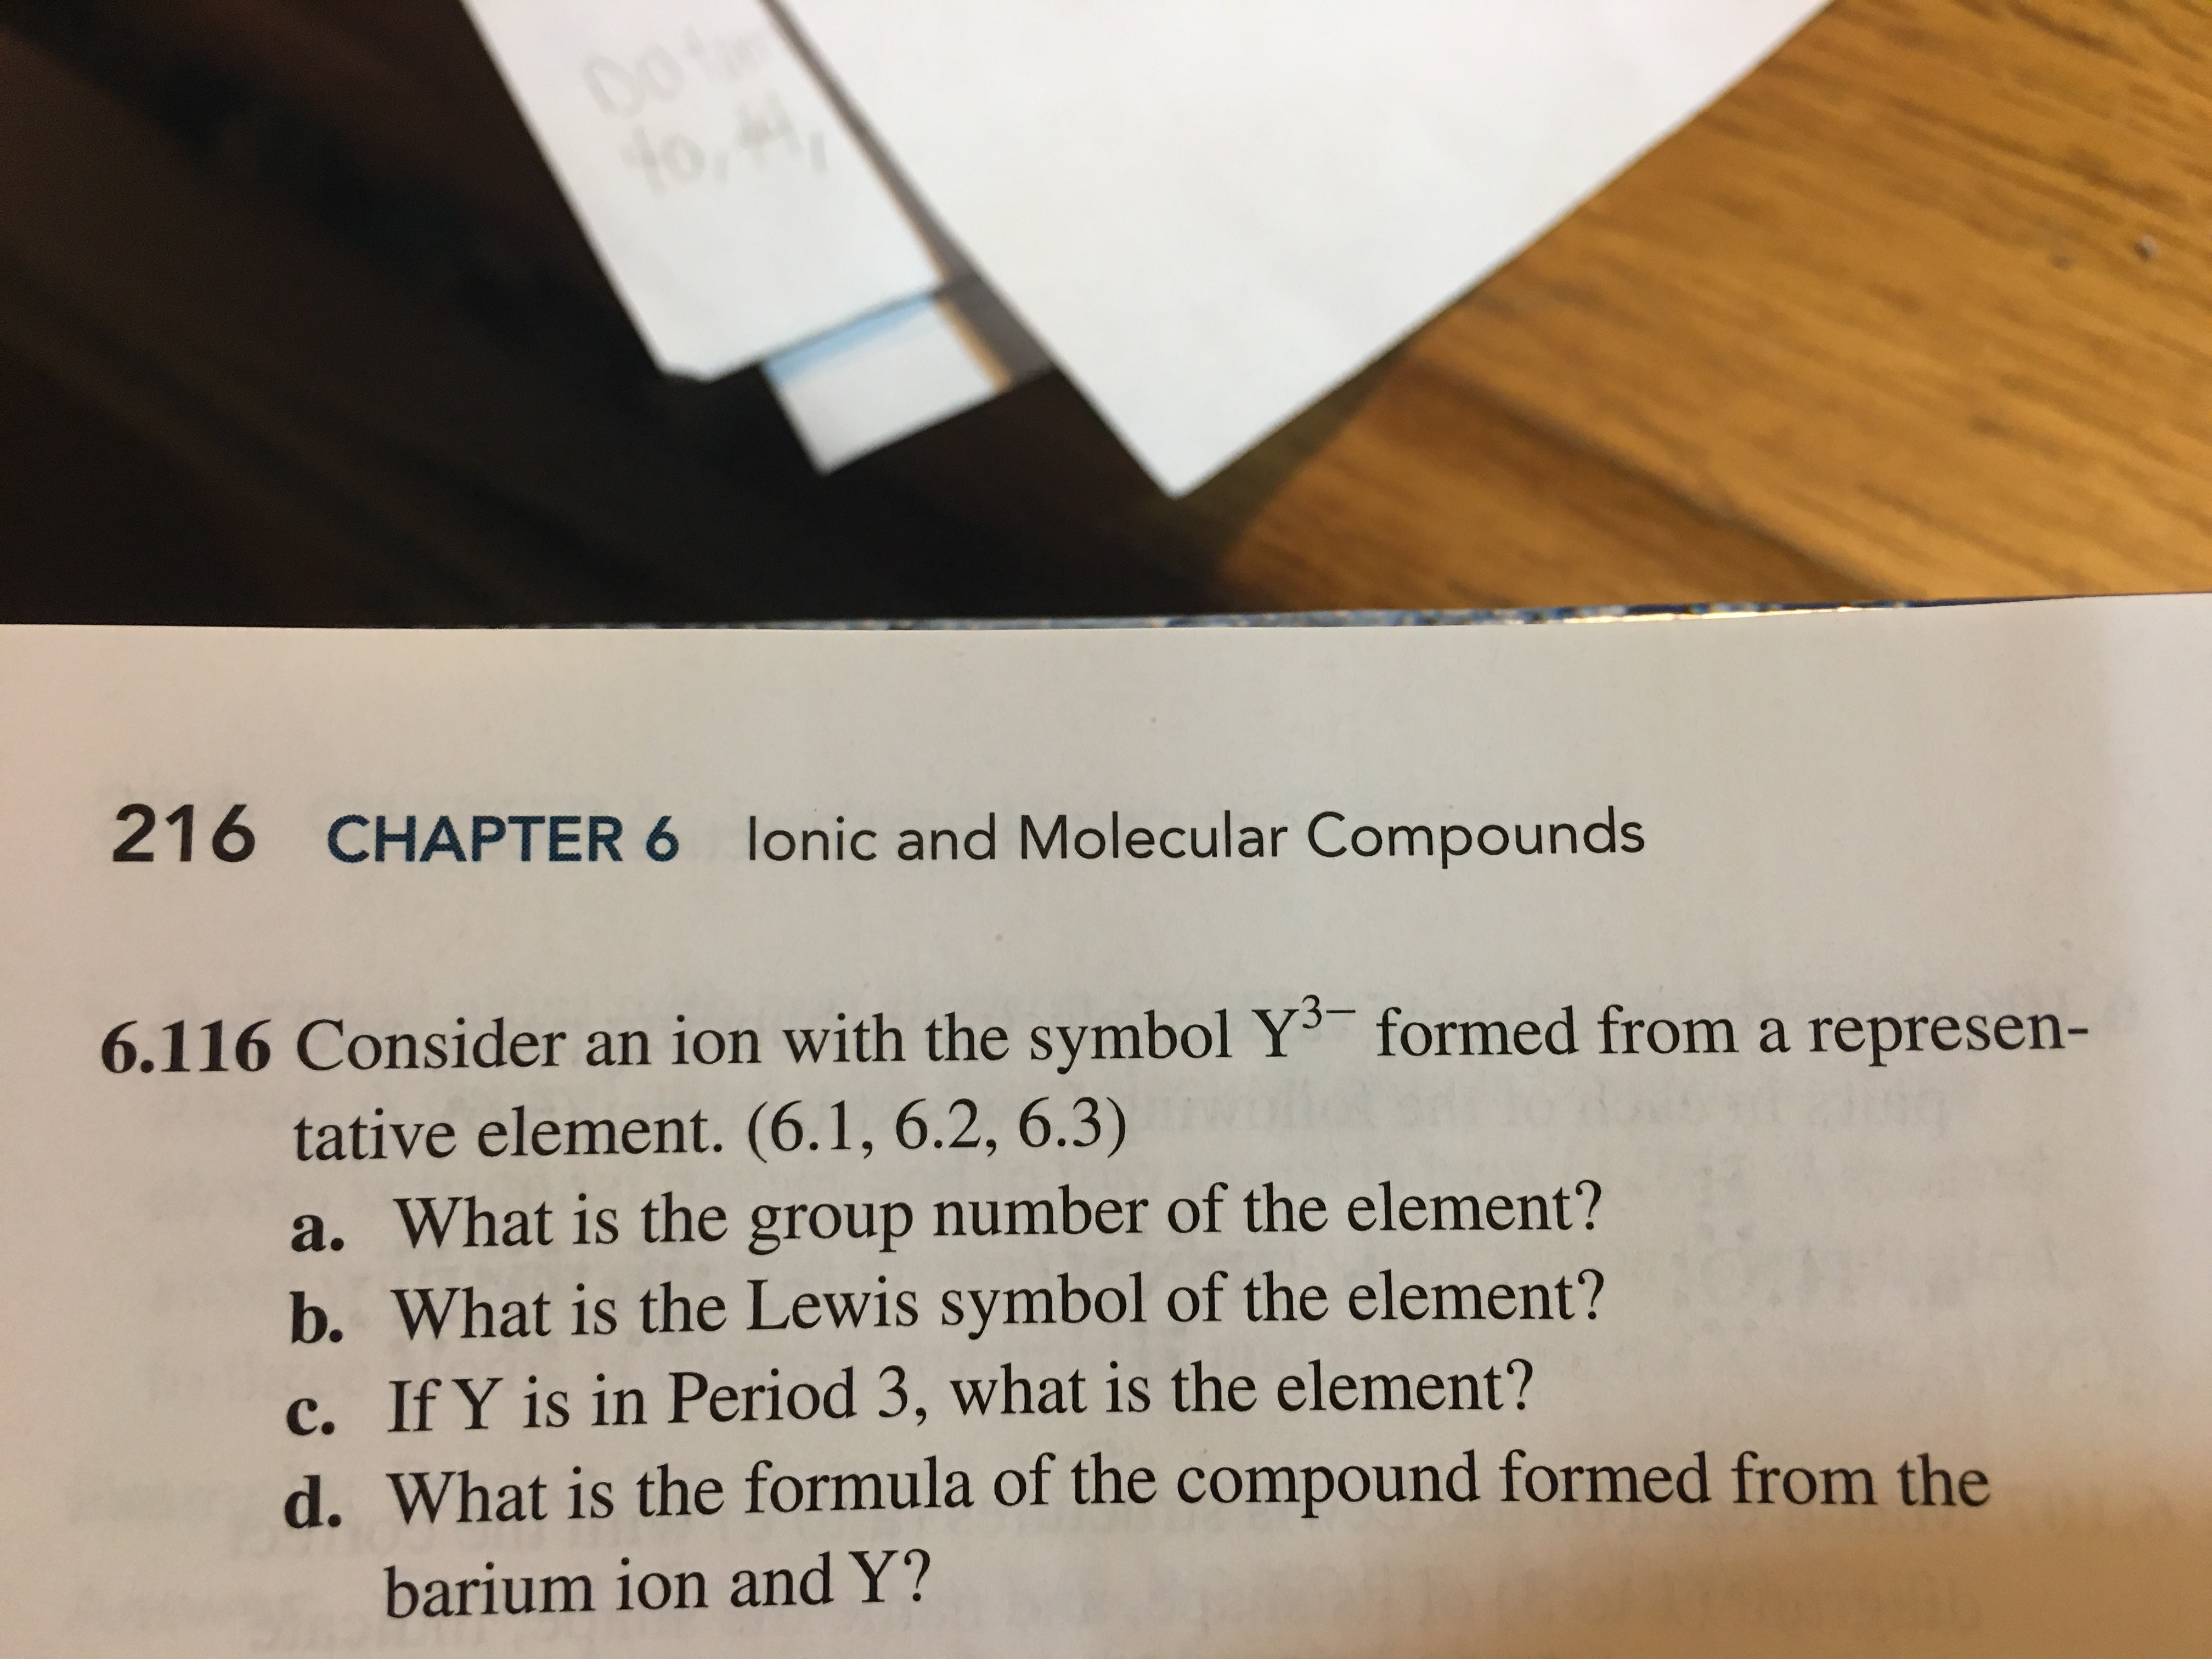 0o to, 216 CHAPTER 6 lonic and Molecular Compounds 6.116 Consider an ion with the symbol Y formed from a represen- tative element. (6.1, 6.2, 6.3) a. What is the group number of the element? b. What is the Lewis symbol of the element? c. If Y is in Period 3, what is the element? d. What is the formula of the compound formed from the barium ion and Y?